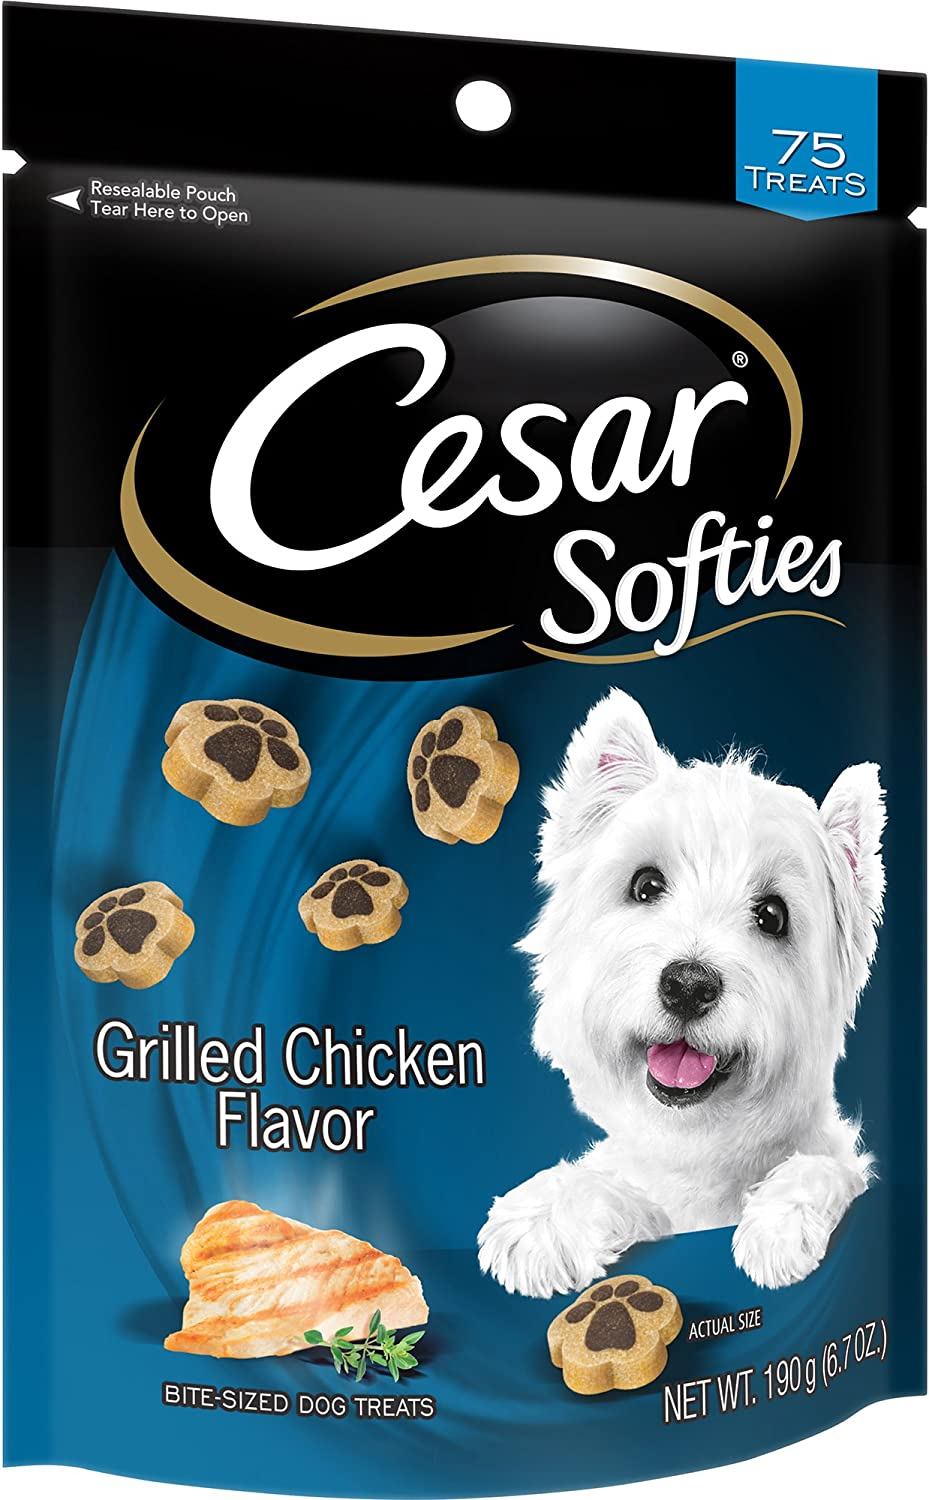 Cesar Canine Cuisine Softies Dog Treats, Grilled Chicken Flavor, 75 Count